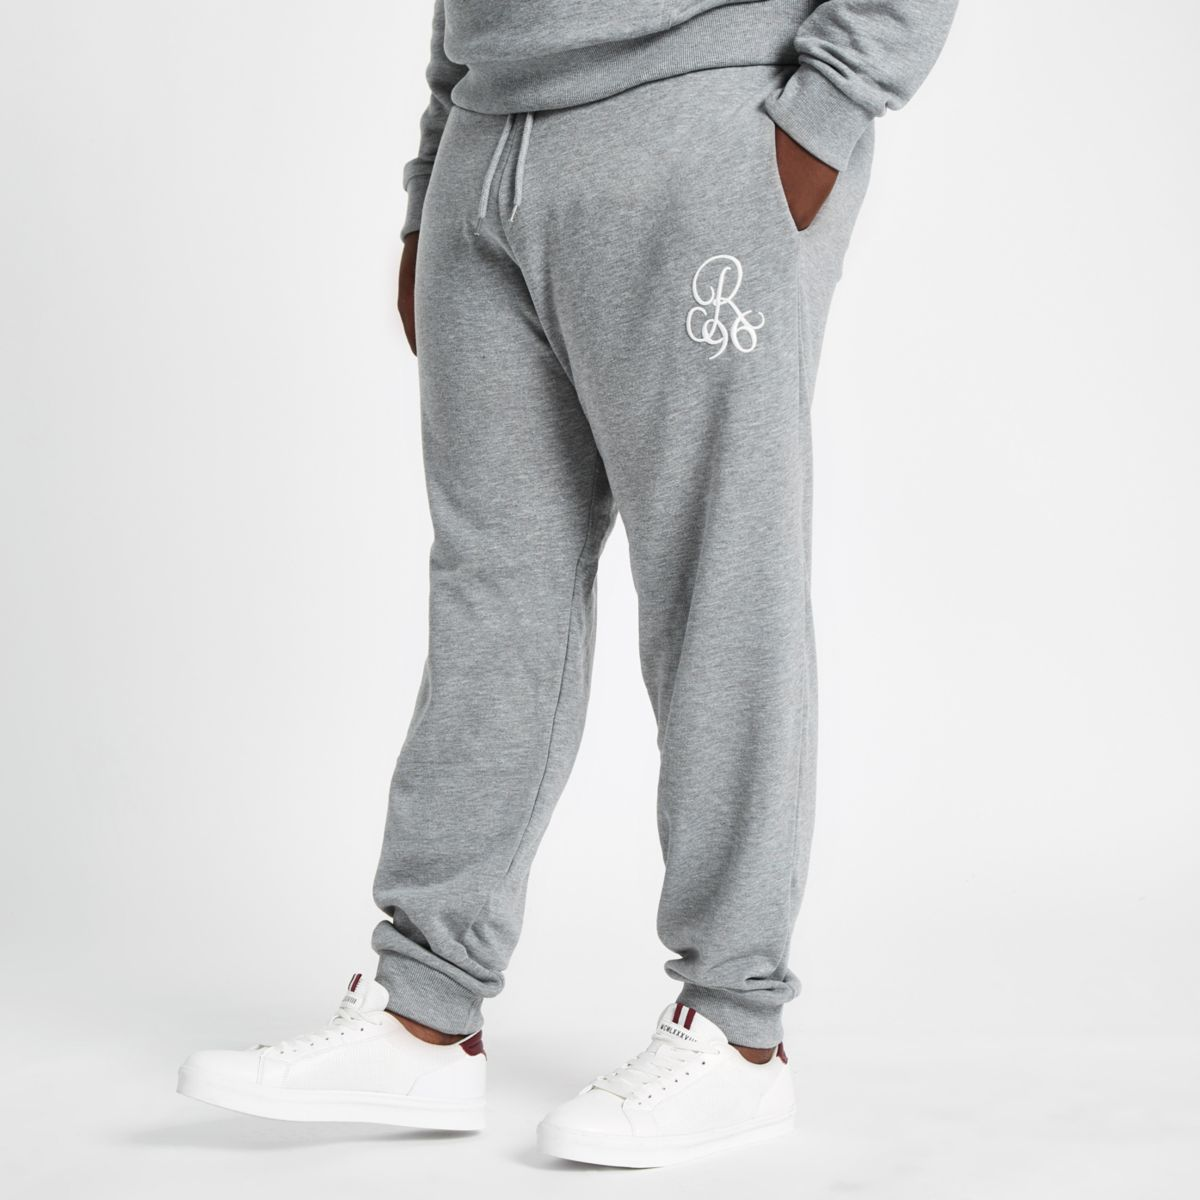 Big and Tall grey slim fit R96 joggers